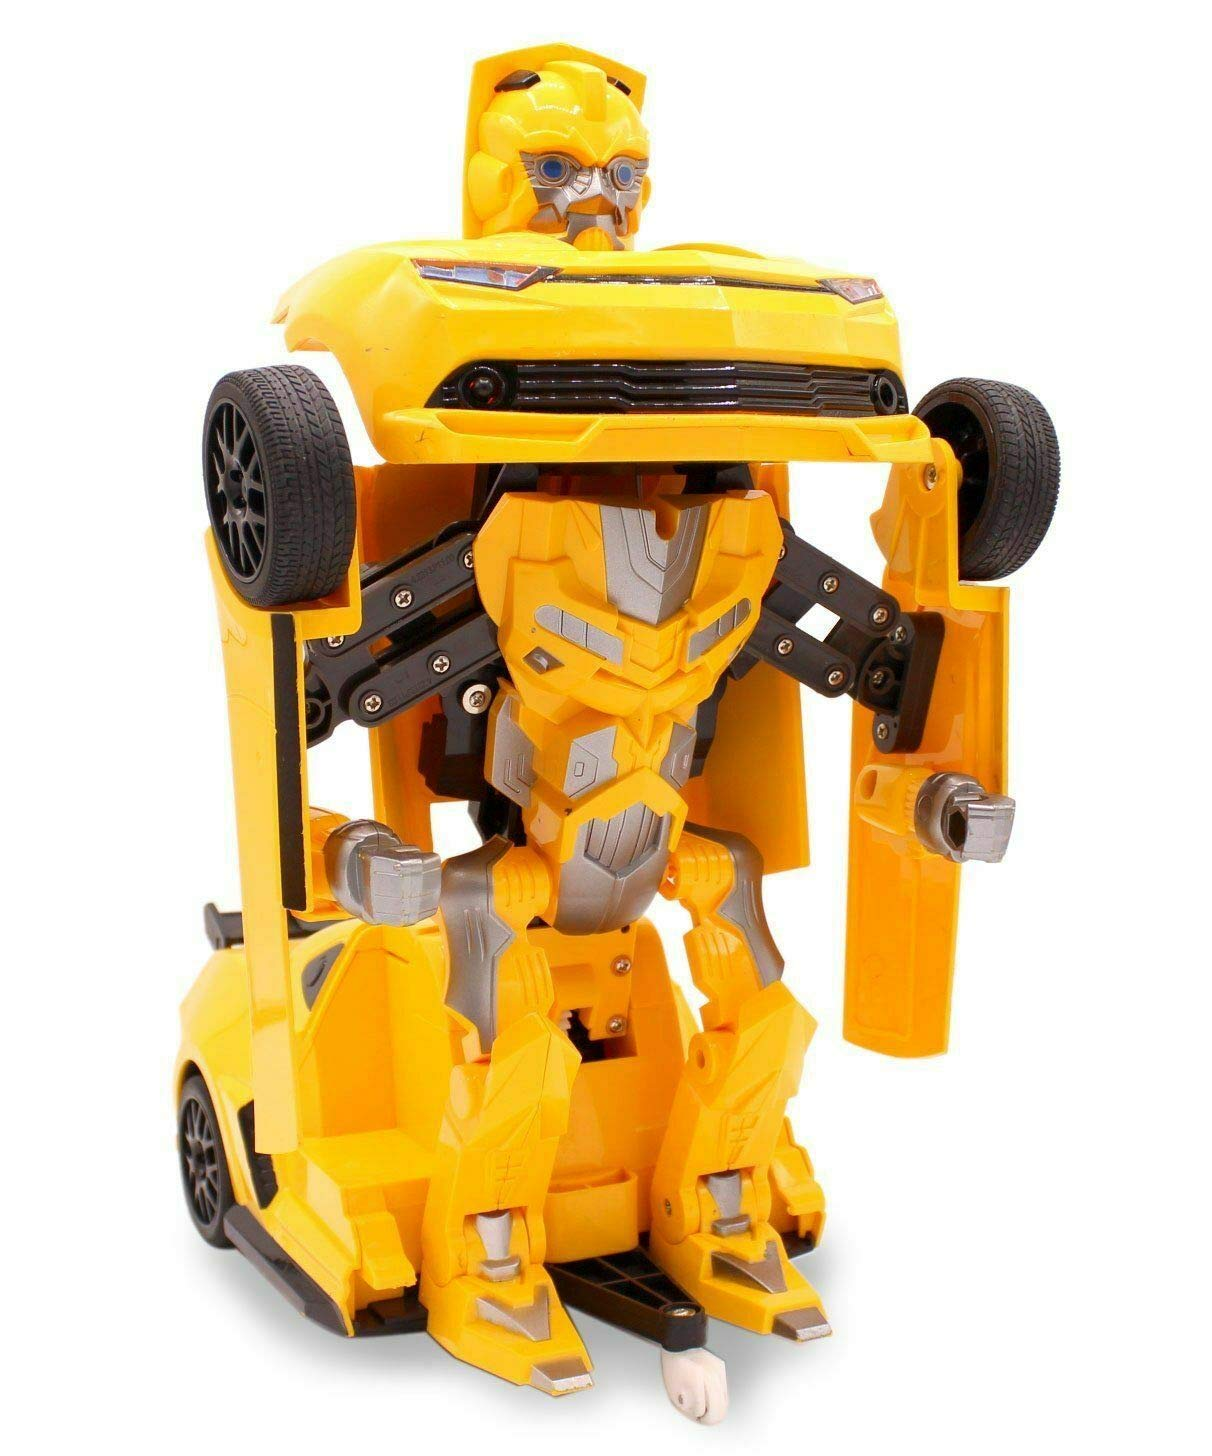 Kids RC Toy Sports Car Transforming Robot Remote Control with One Button Transformation, Realistic Engine Sounds, 360 Speed Drifting, Sword and Shield Included Toys For Boys 1:14 Scale Yellow by Transformania Toys (Image #3)